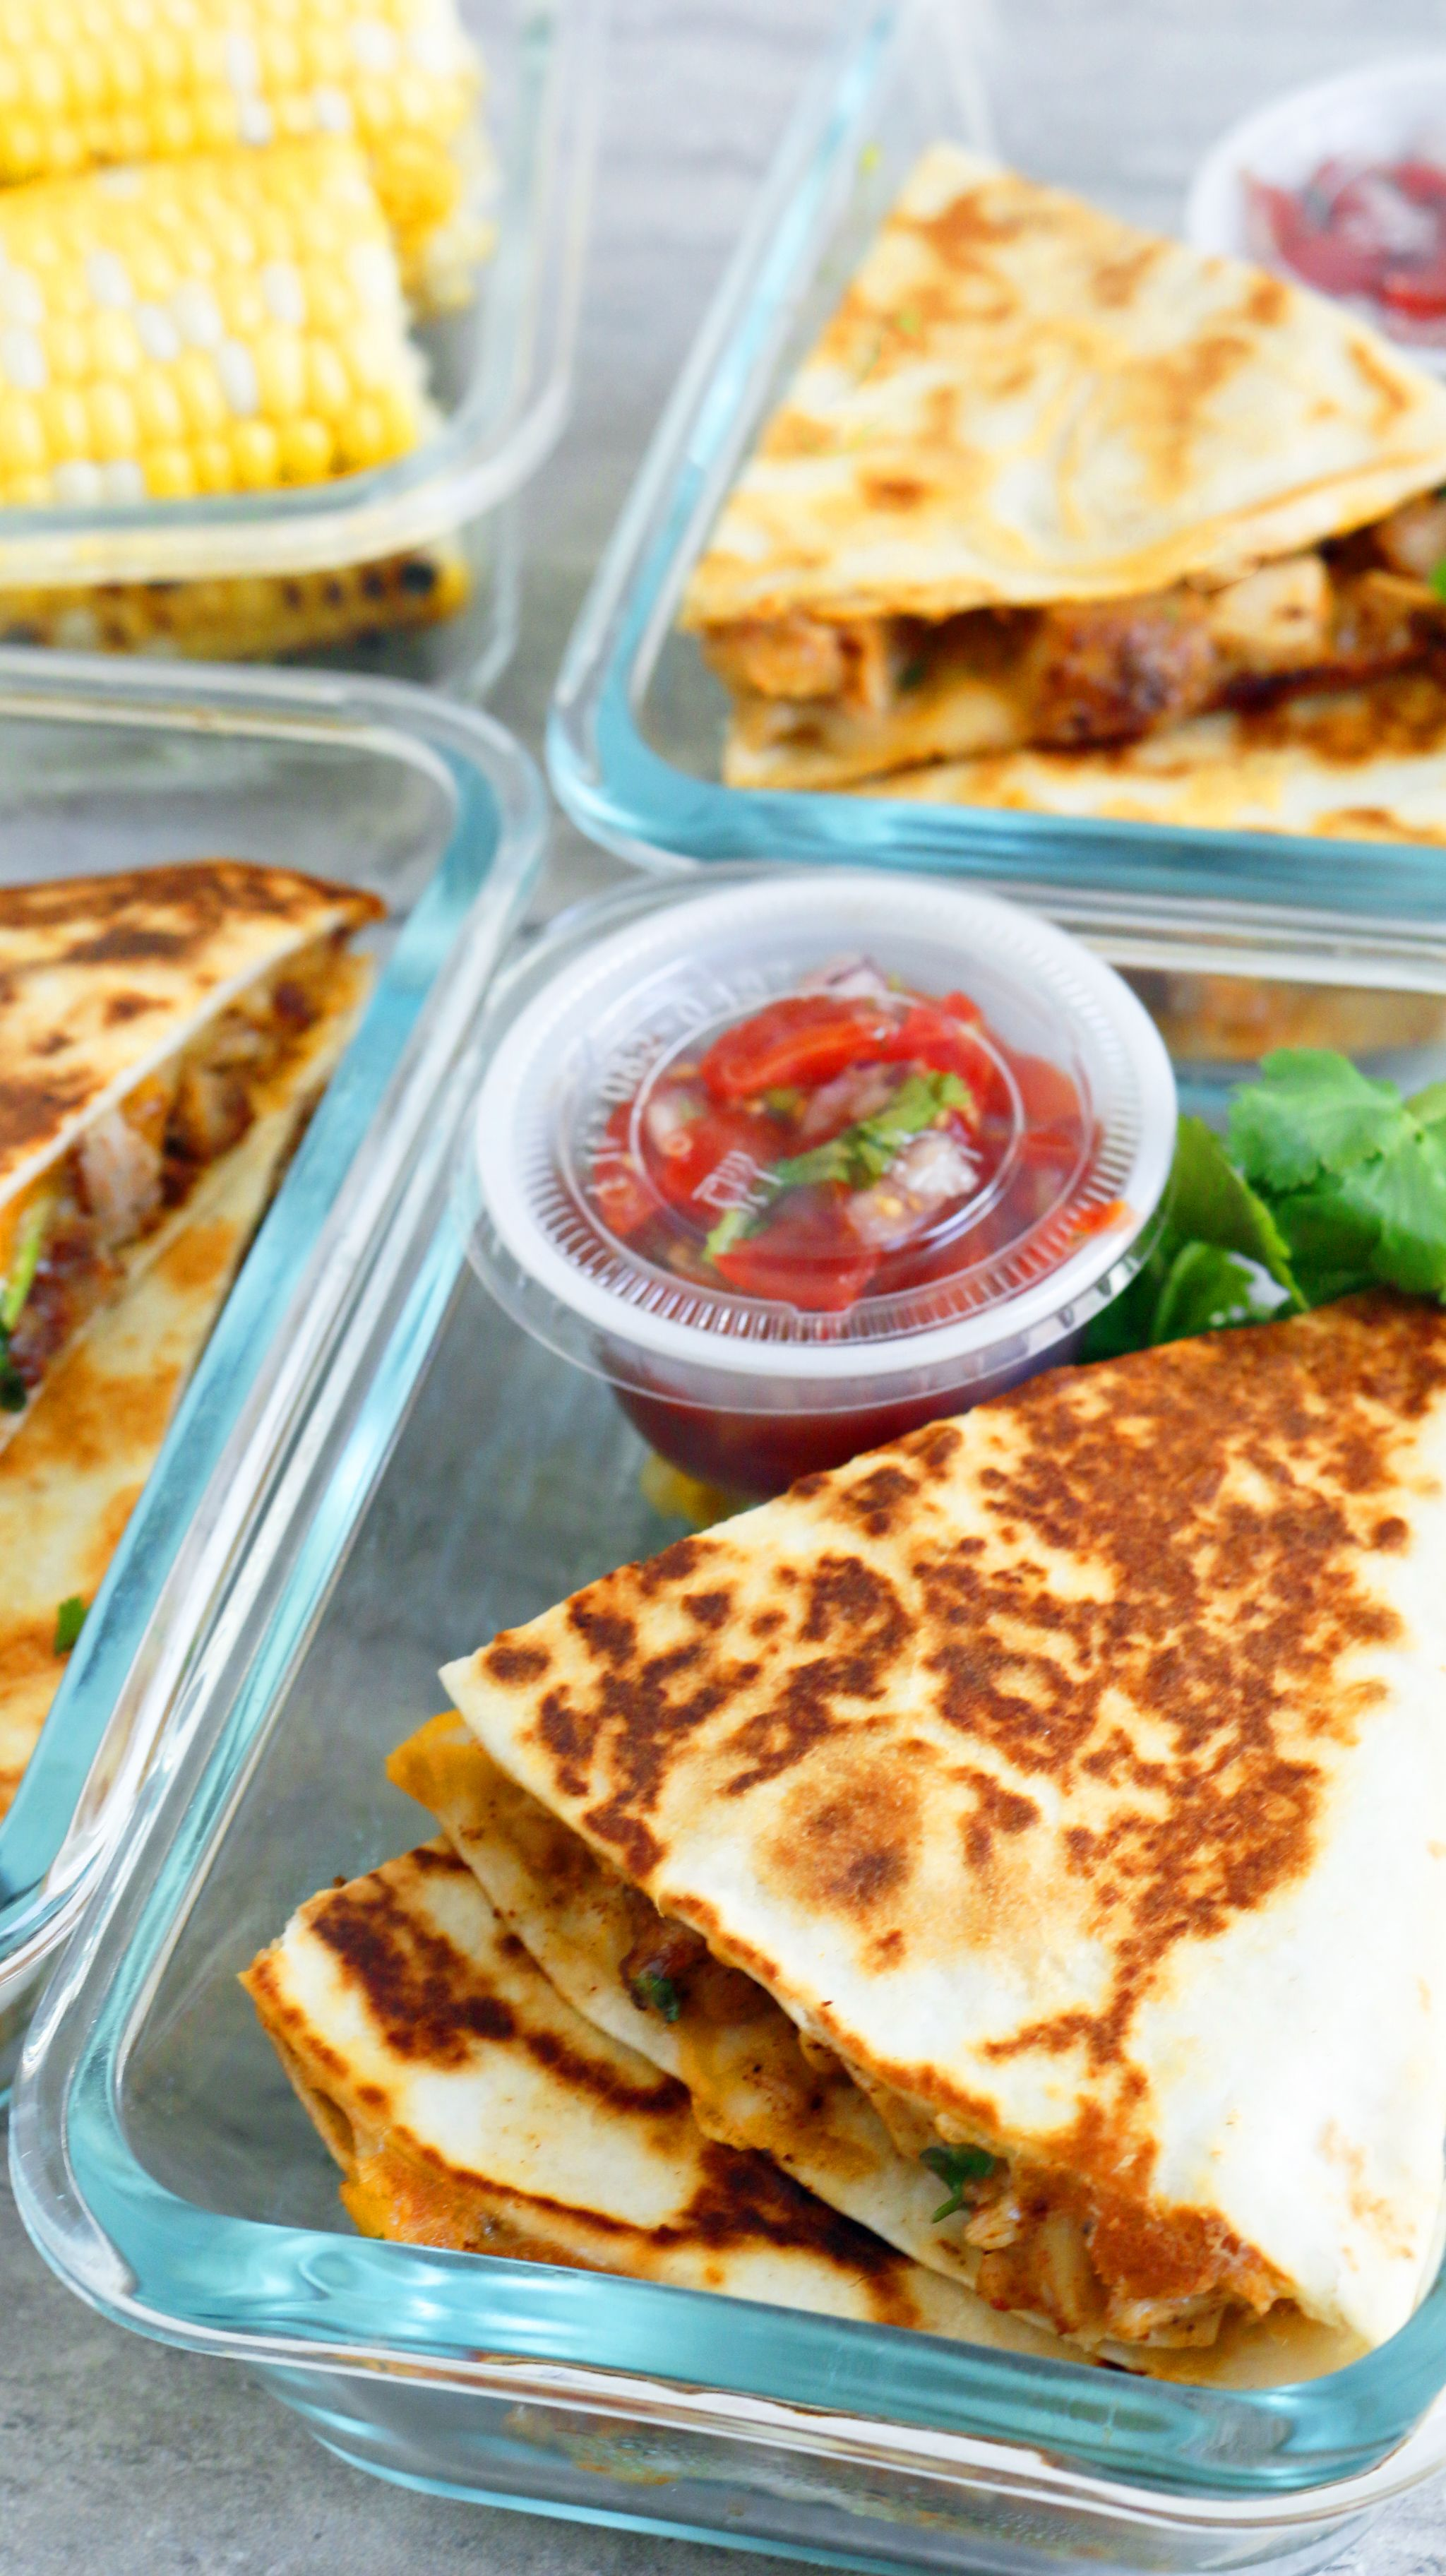 Spicy Chicken Ranch Quesadilla + Meal Prep - Kitchen @ Hoskins